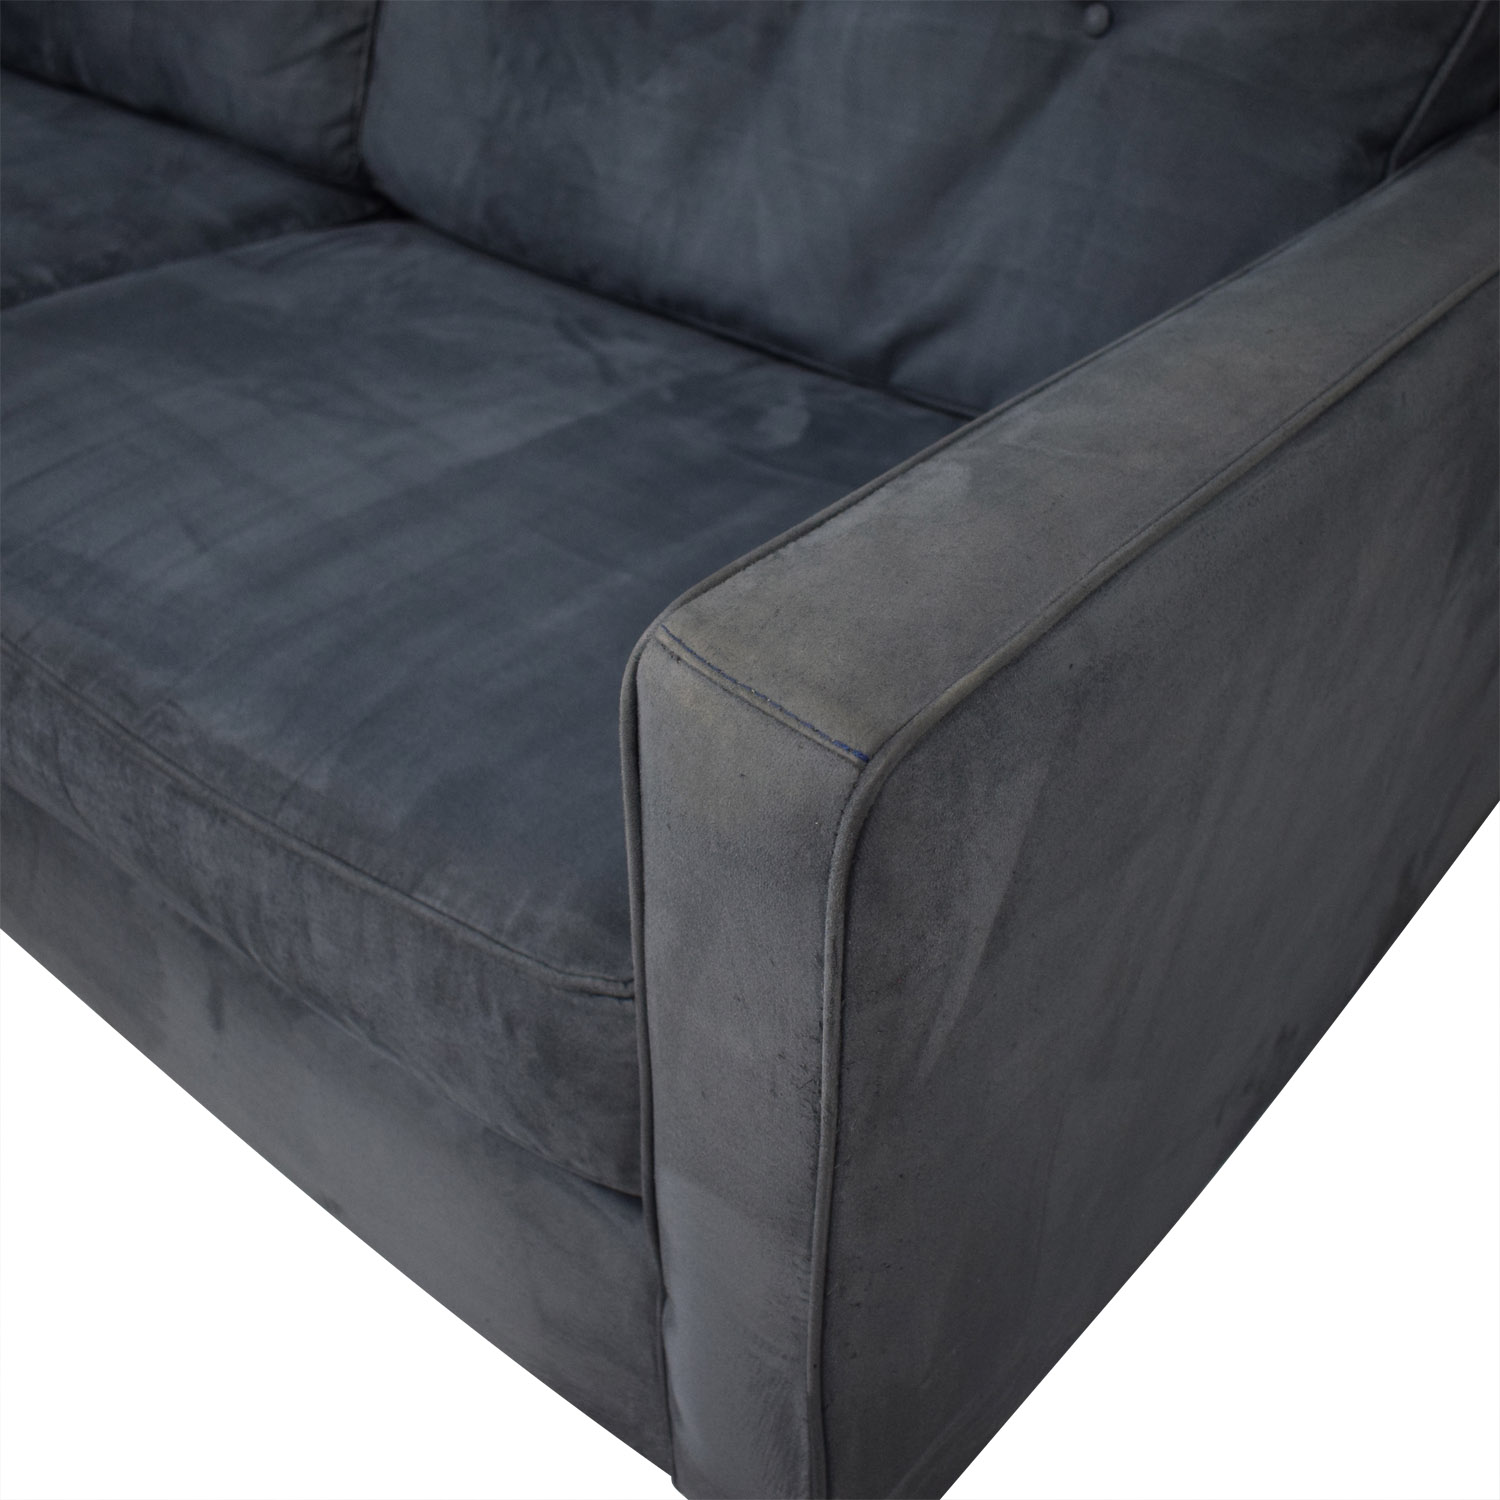 Bauhaus Furniture Bauhaus Furniture Navy Tufted Microfiber Sofa